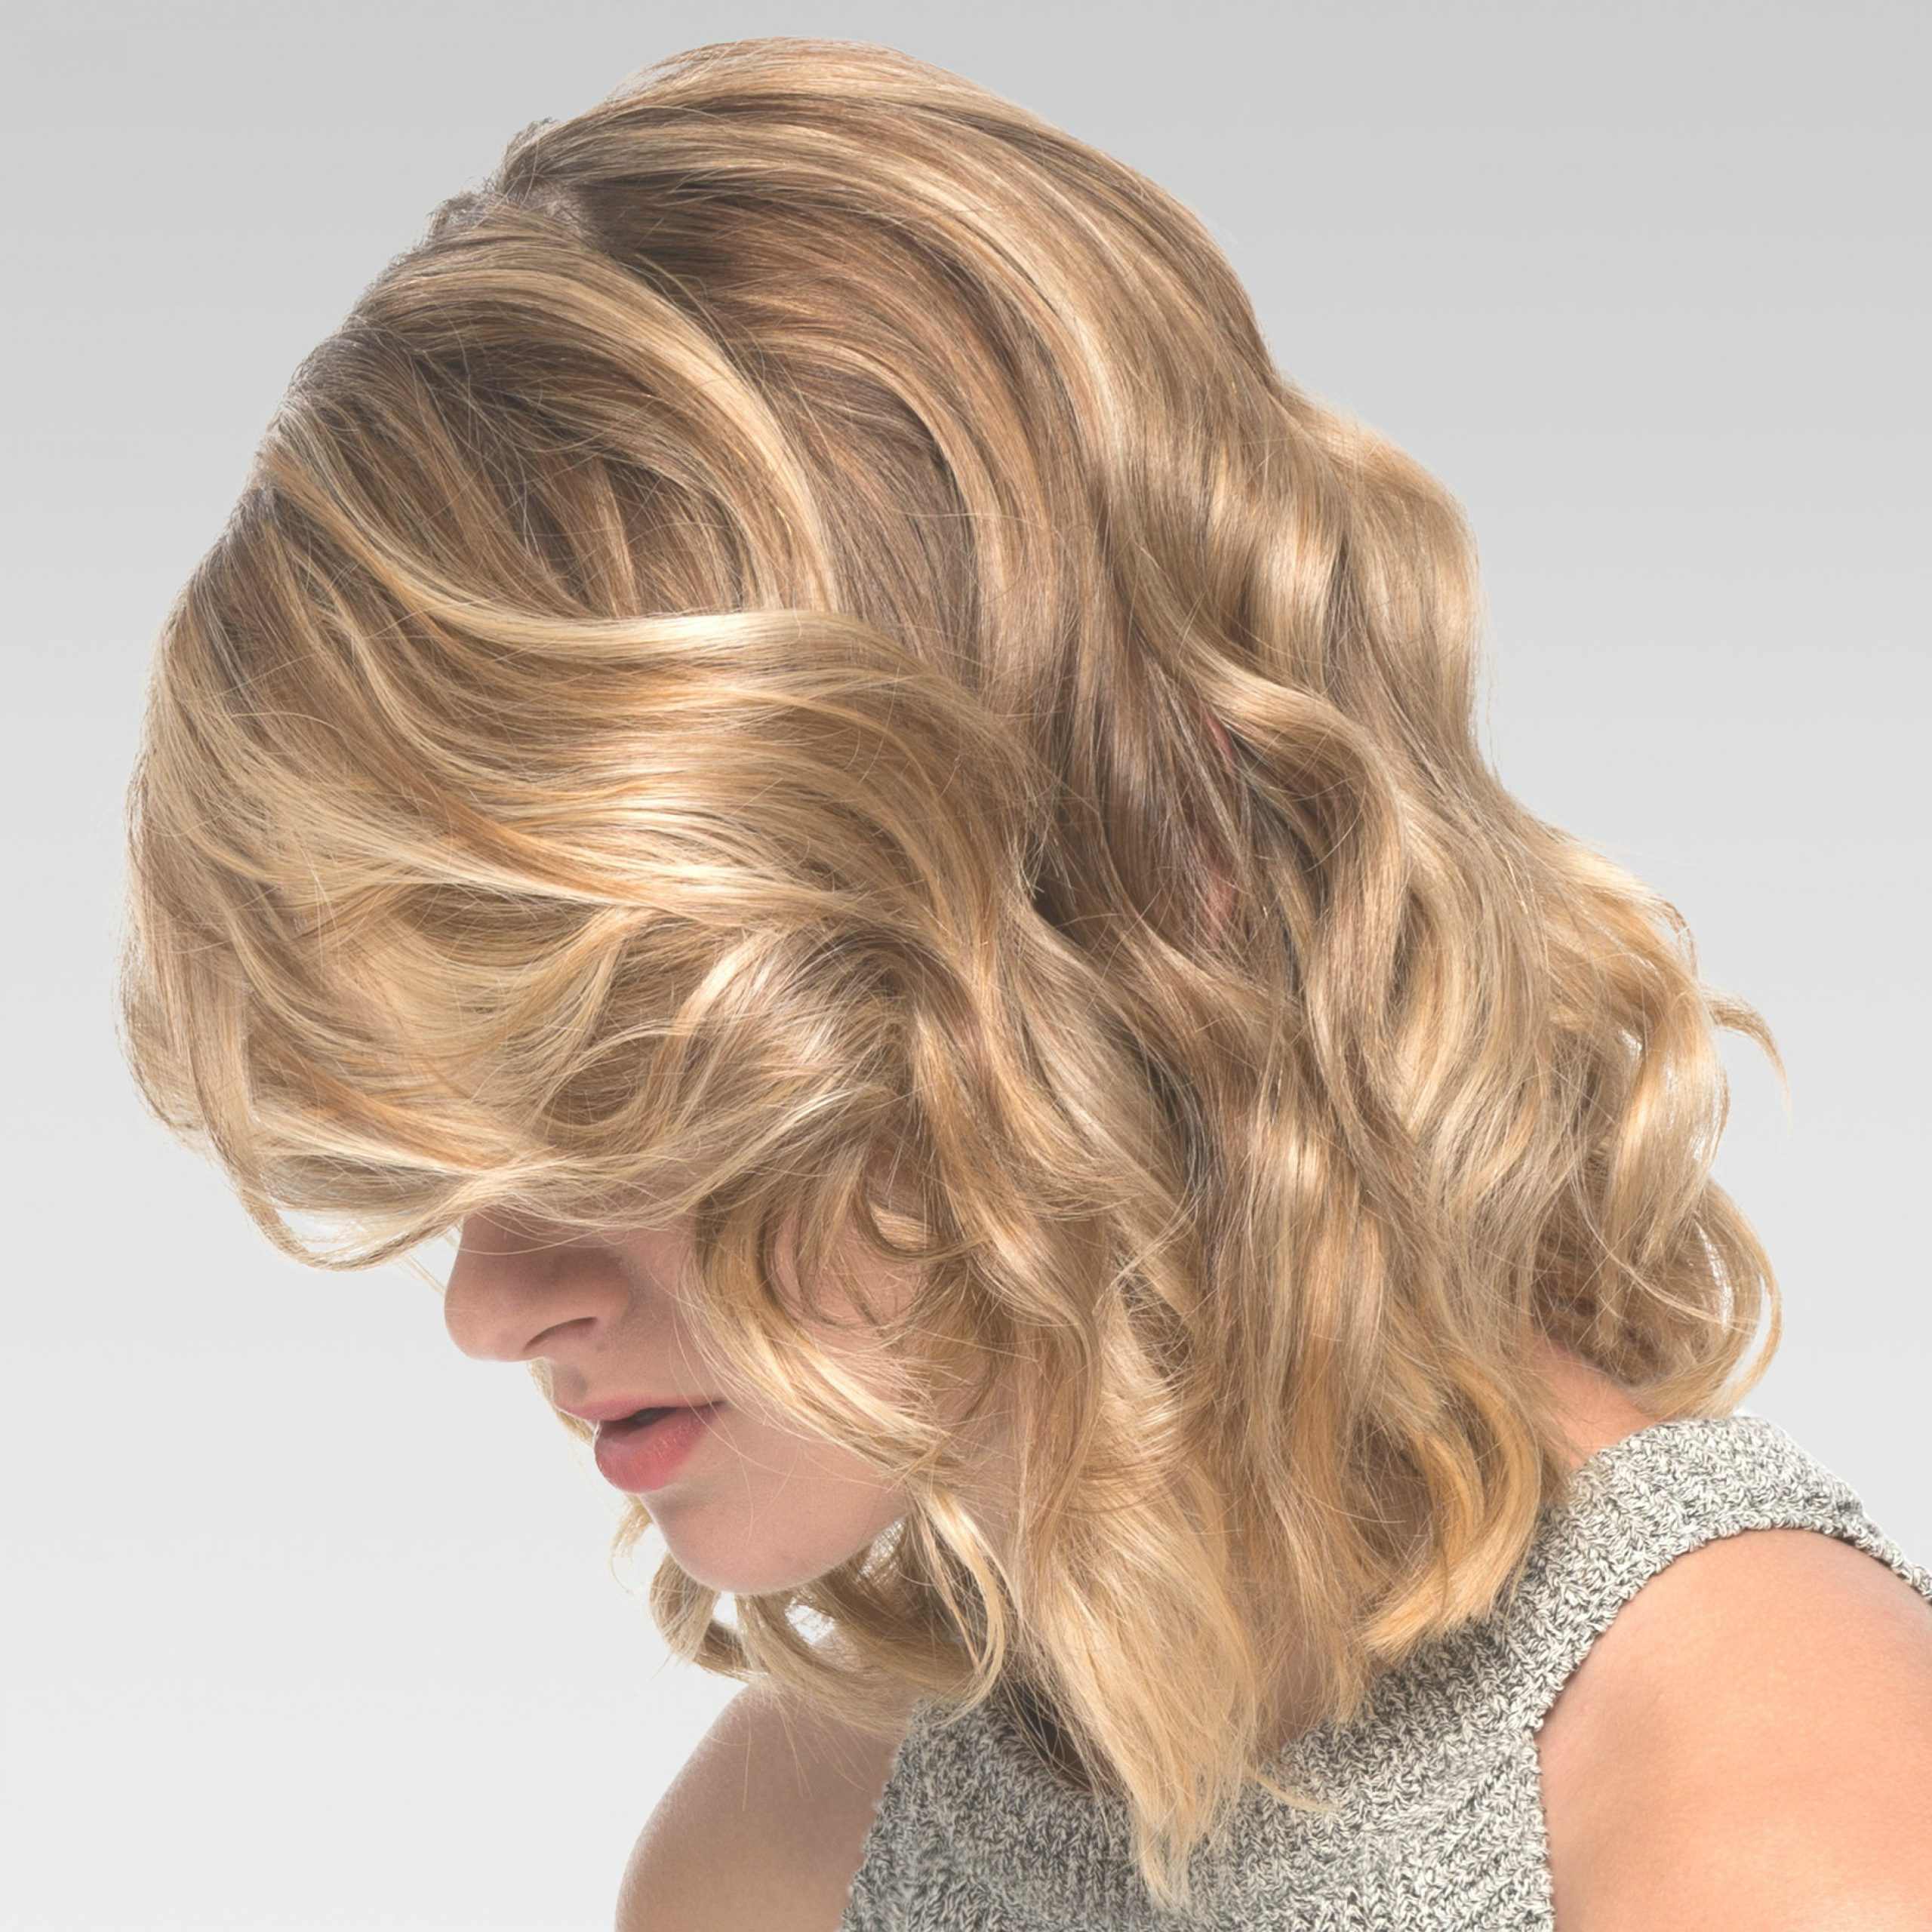 Cascading: For Short, Medium And Long Hair – Minnesota Regarding Famous Dynamic Layered Feathered Bangs Hairstyles (View 15 of 20)